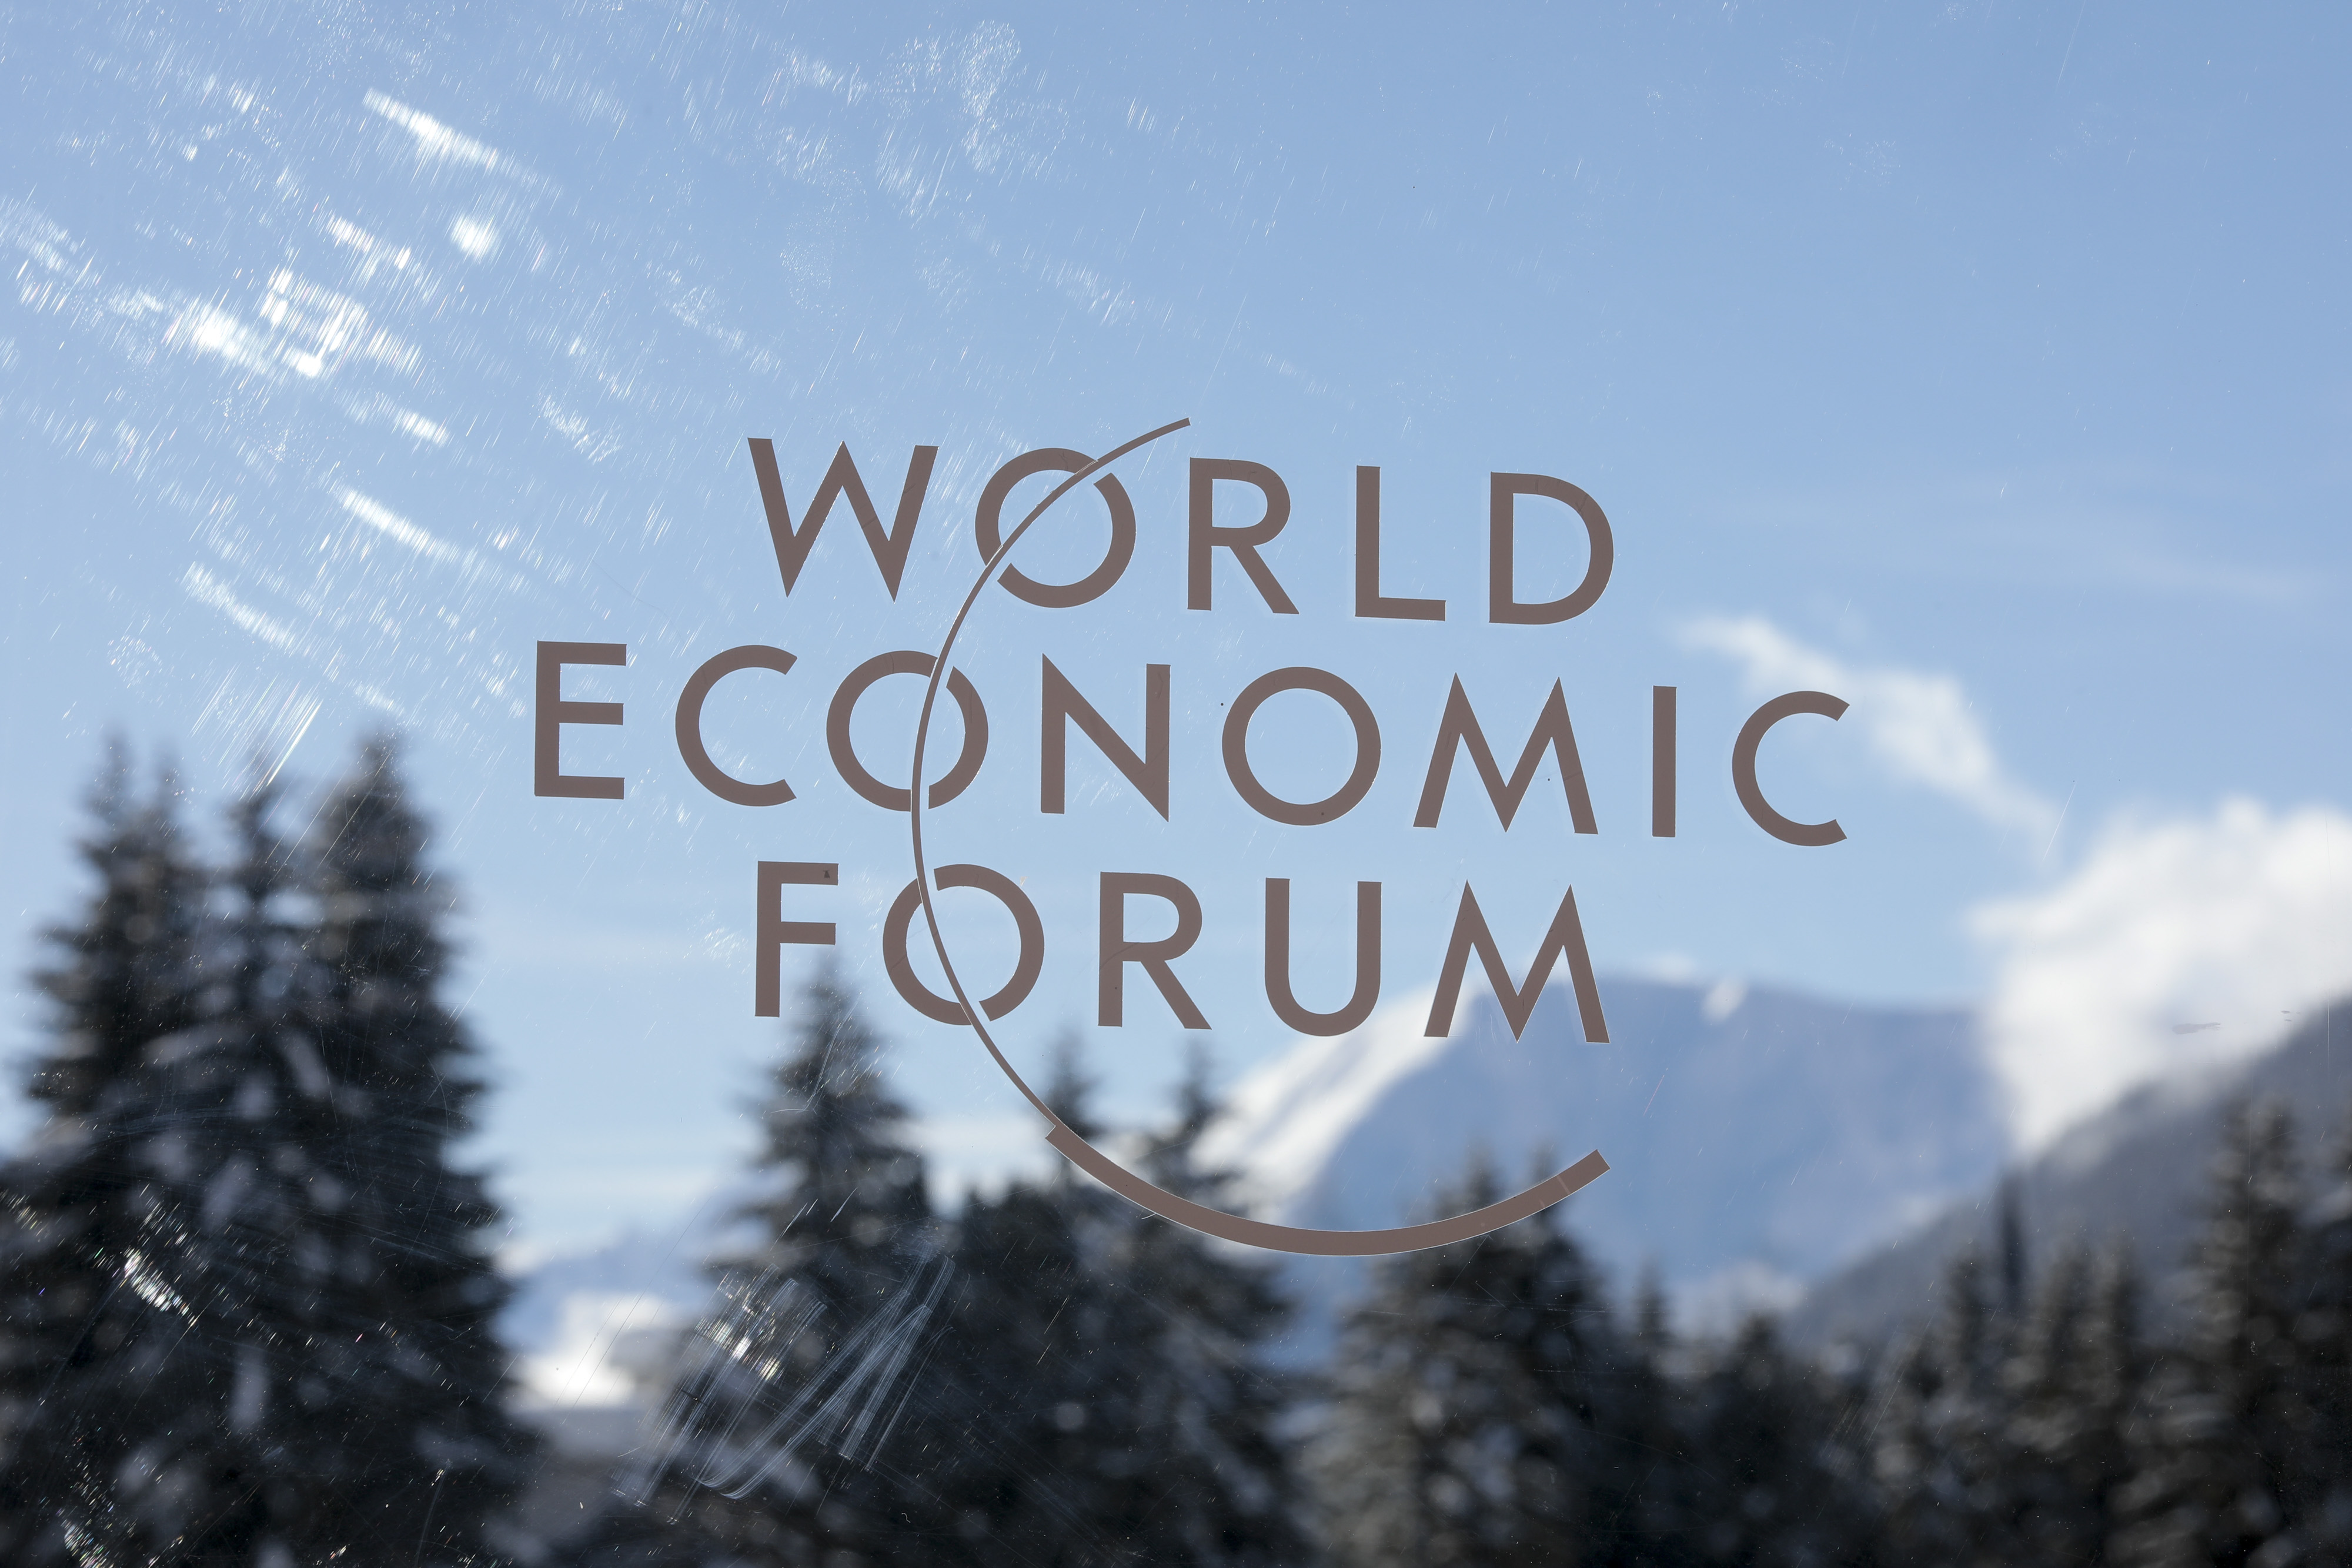 Opening Day Of The World Economic Forum (WEF) 2018